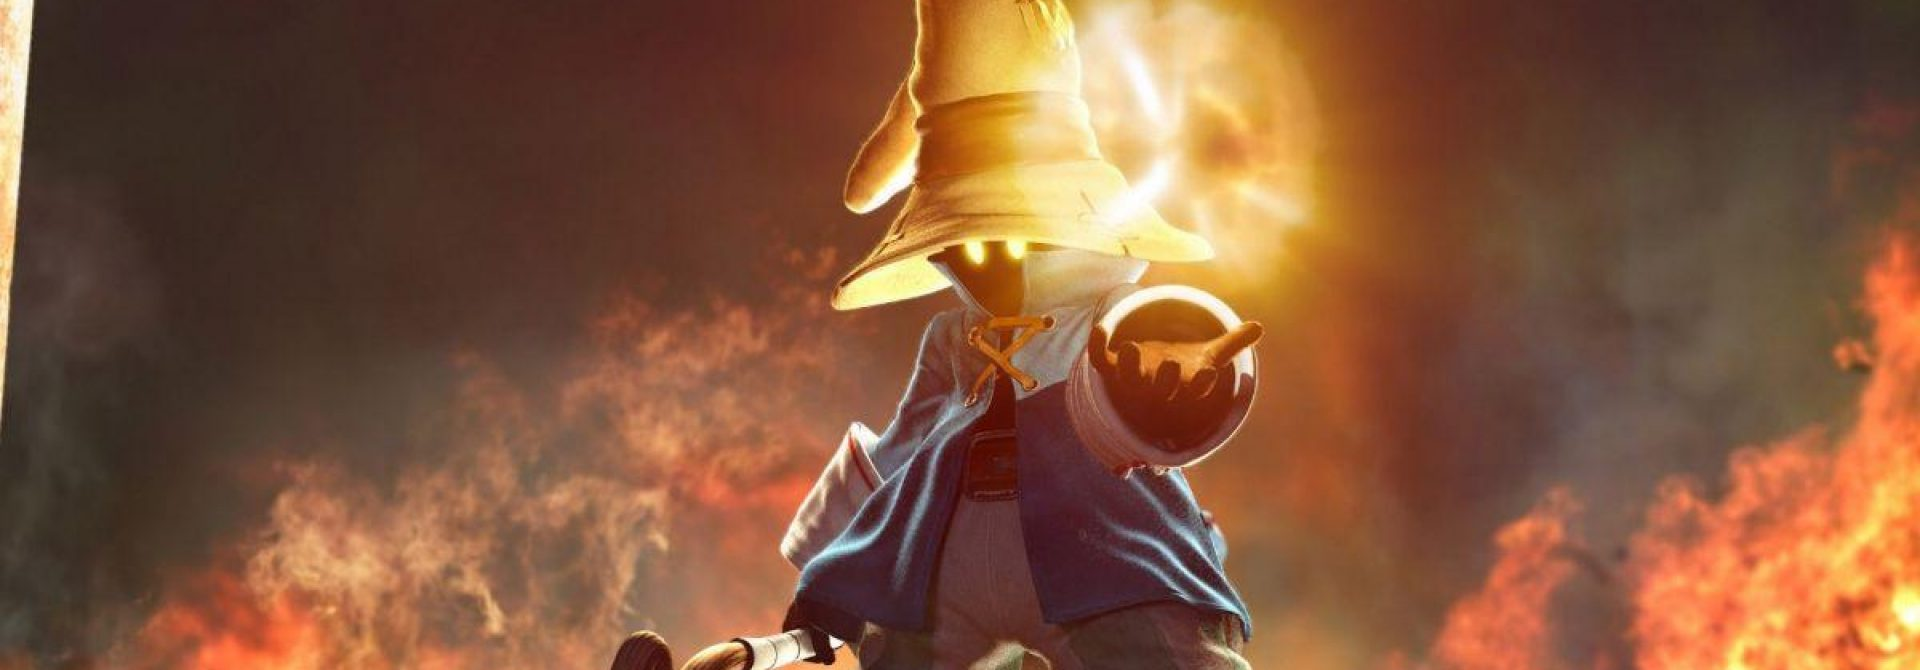 Final Fantasy 9 Re-Released On PlayStation 4